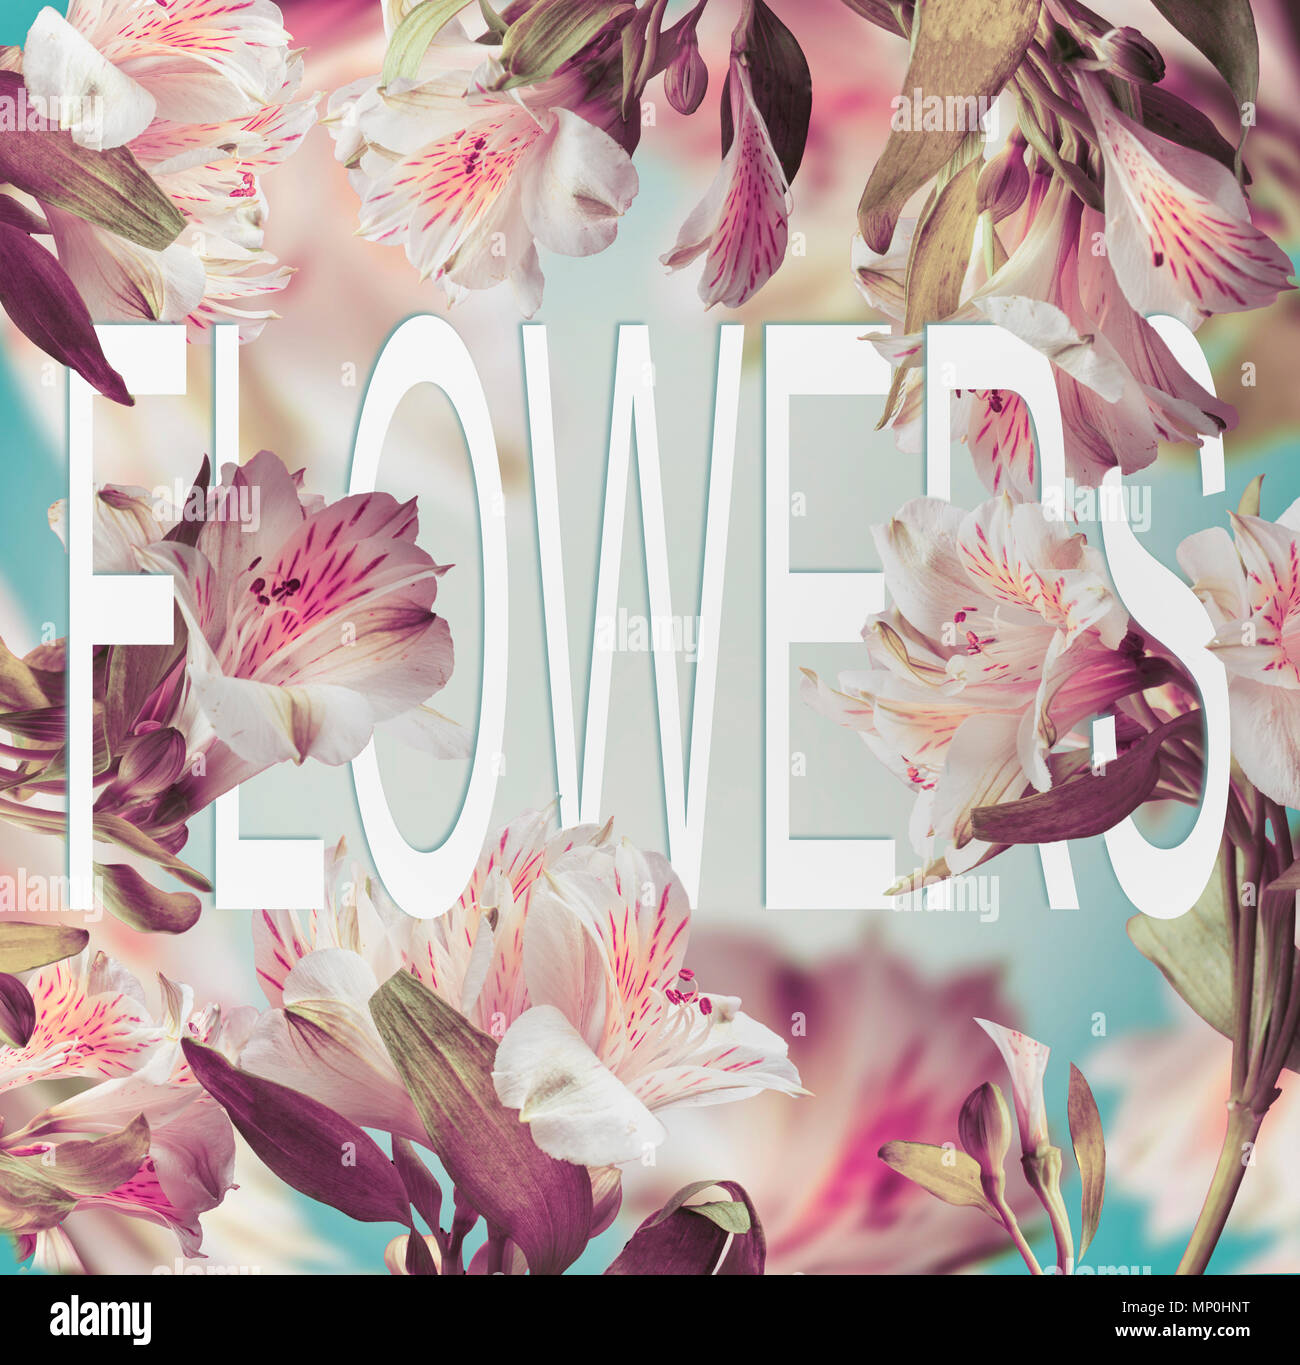 Word flowers made of paper on floral background with various flying word flowers made of paper on floral background with various flying flowers creative layout with text mightylinksfo